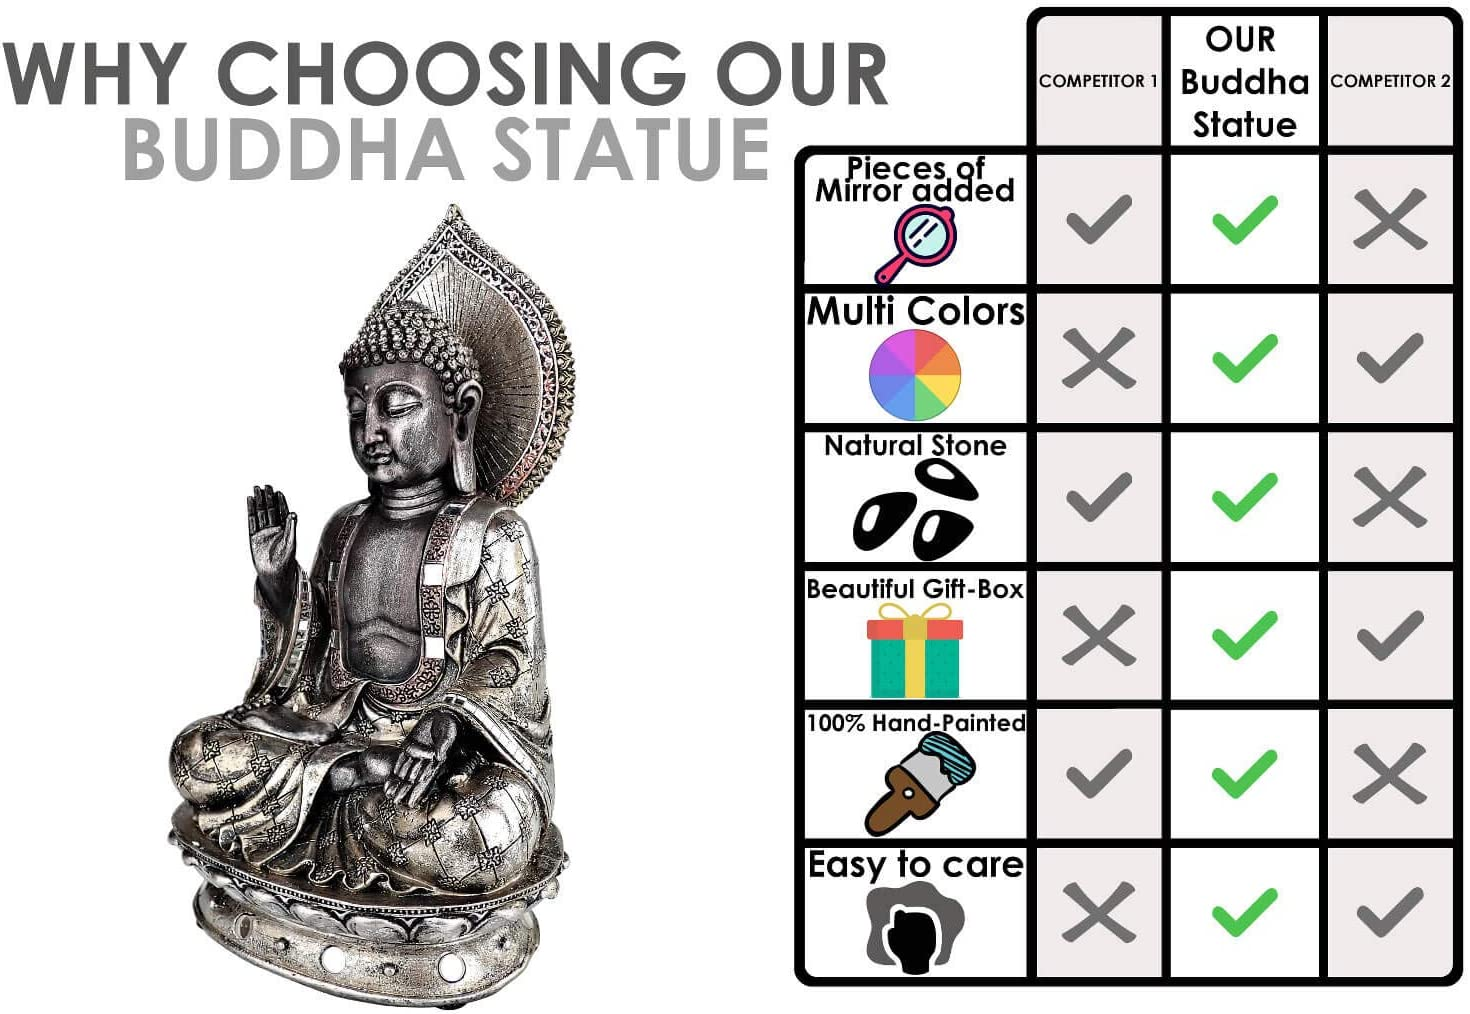 Collectibles and Figurines Yoga Zen Decor The Enlightened One 25DOL Buddha Statues for Home Spiritual Living Room Decor Hindu and East Asian D/écor 8.7 Buddha Statue Meditation Decor